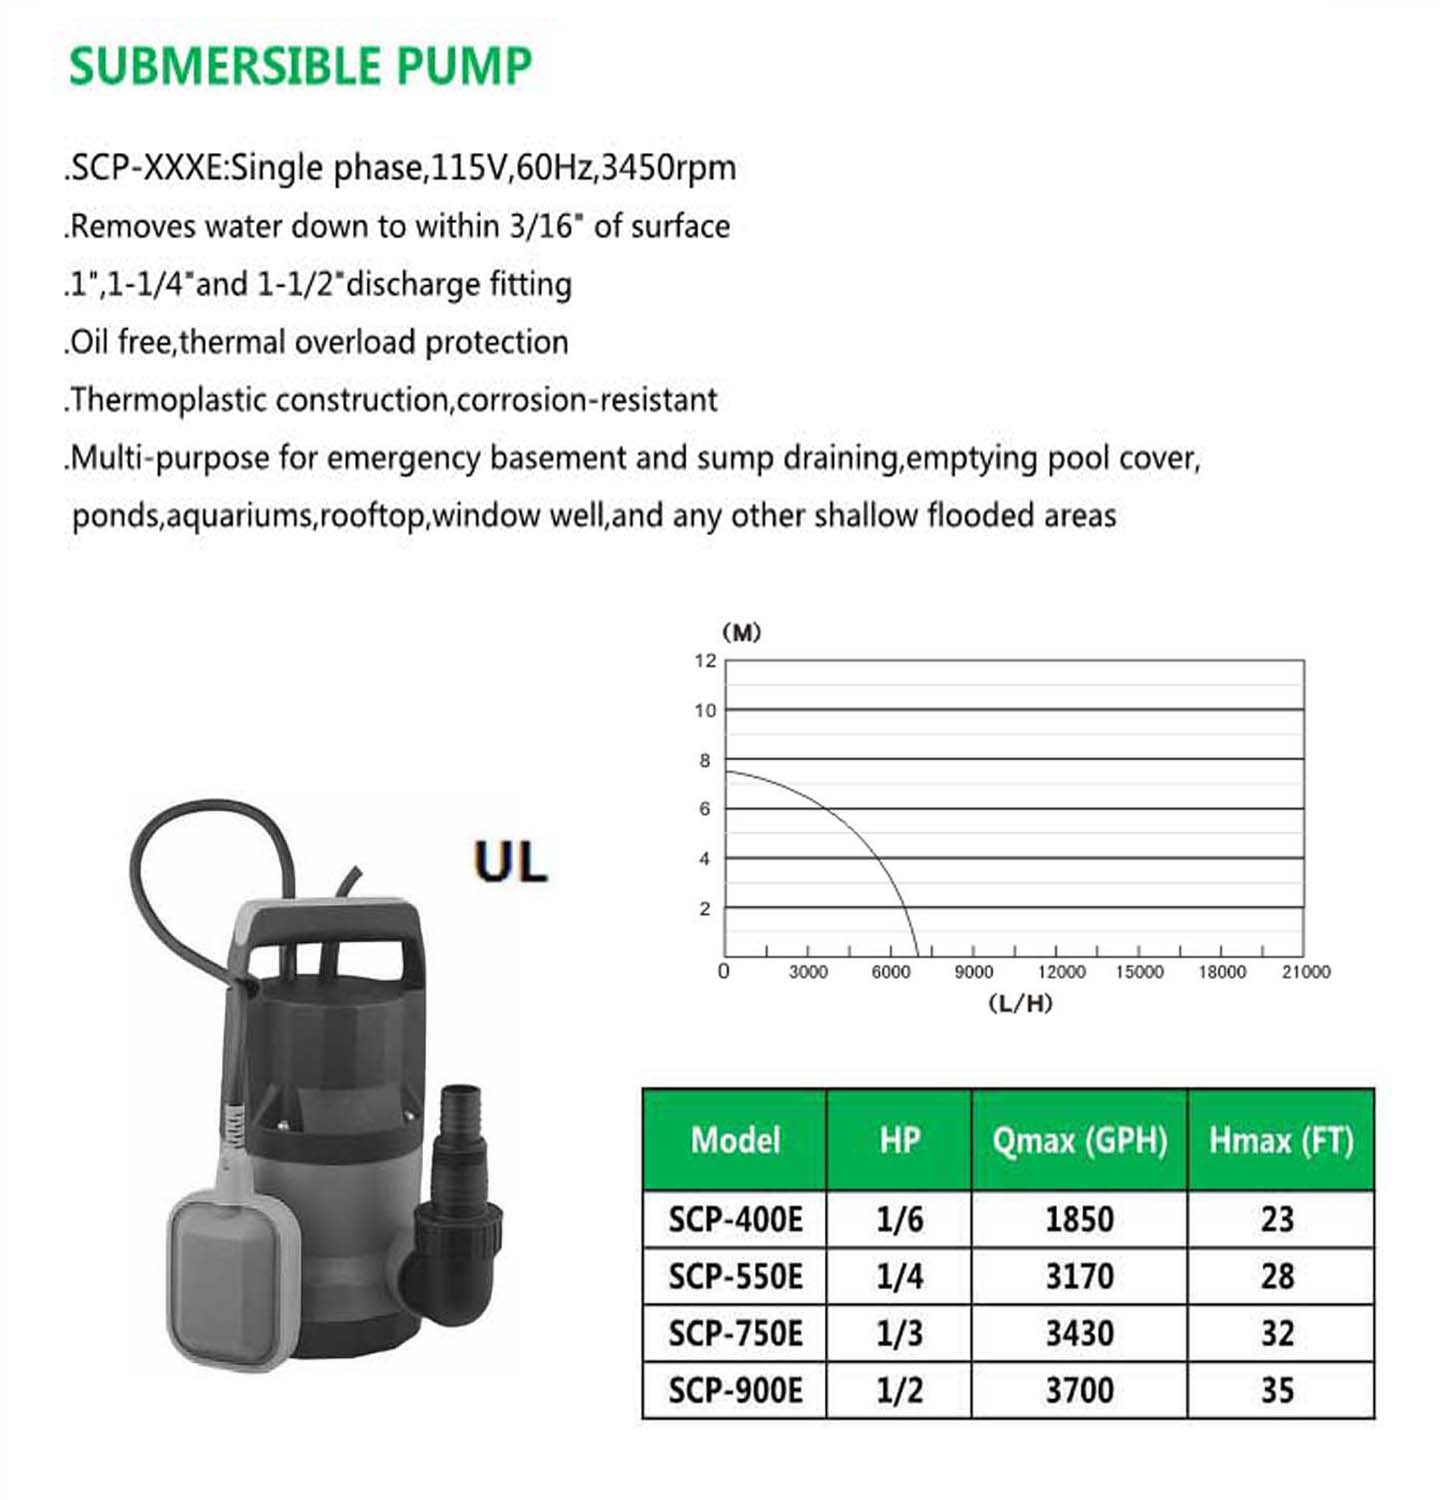 SUBMERSIBLE PUMP SCP-400E SCP-550E SCP-750E SCP-900E